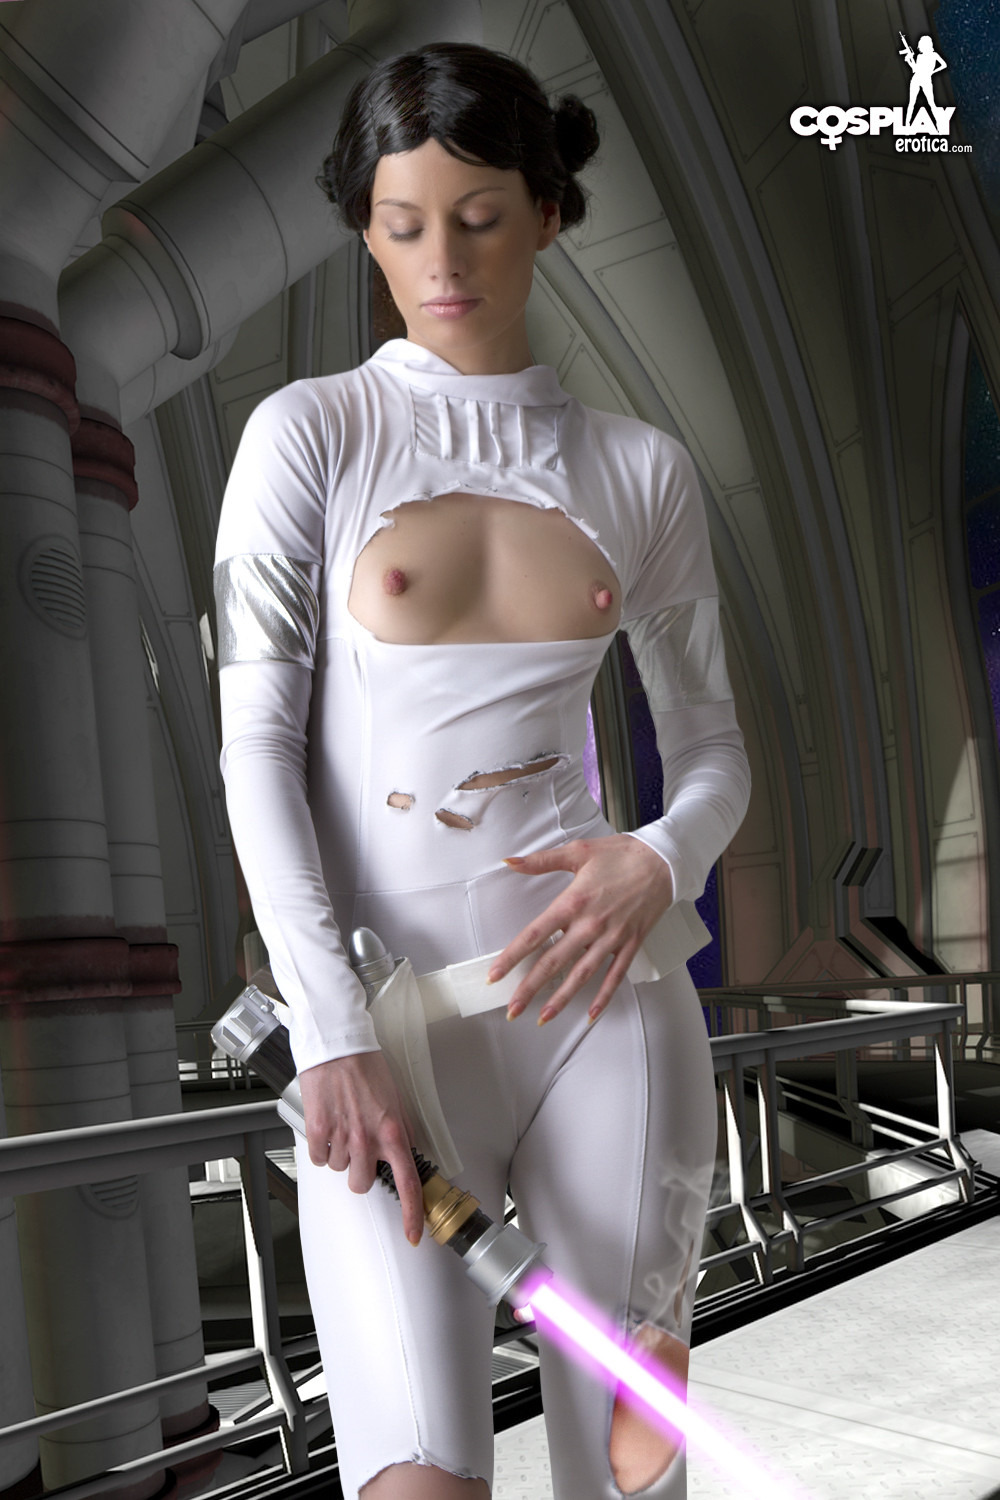 Cosplay naked star wars hentai download